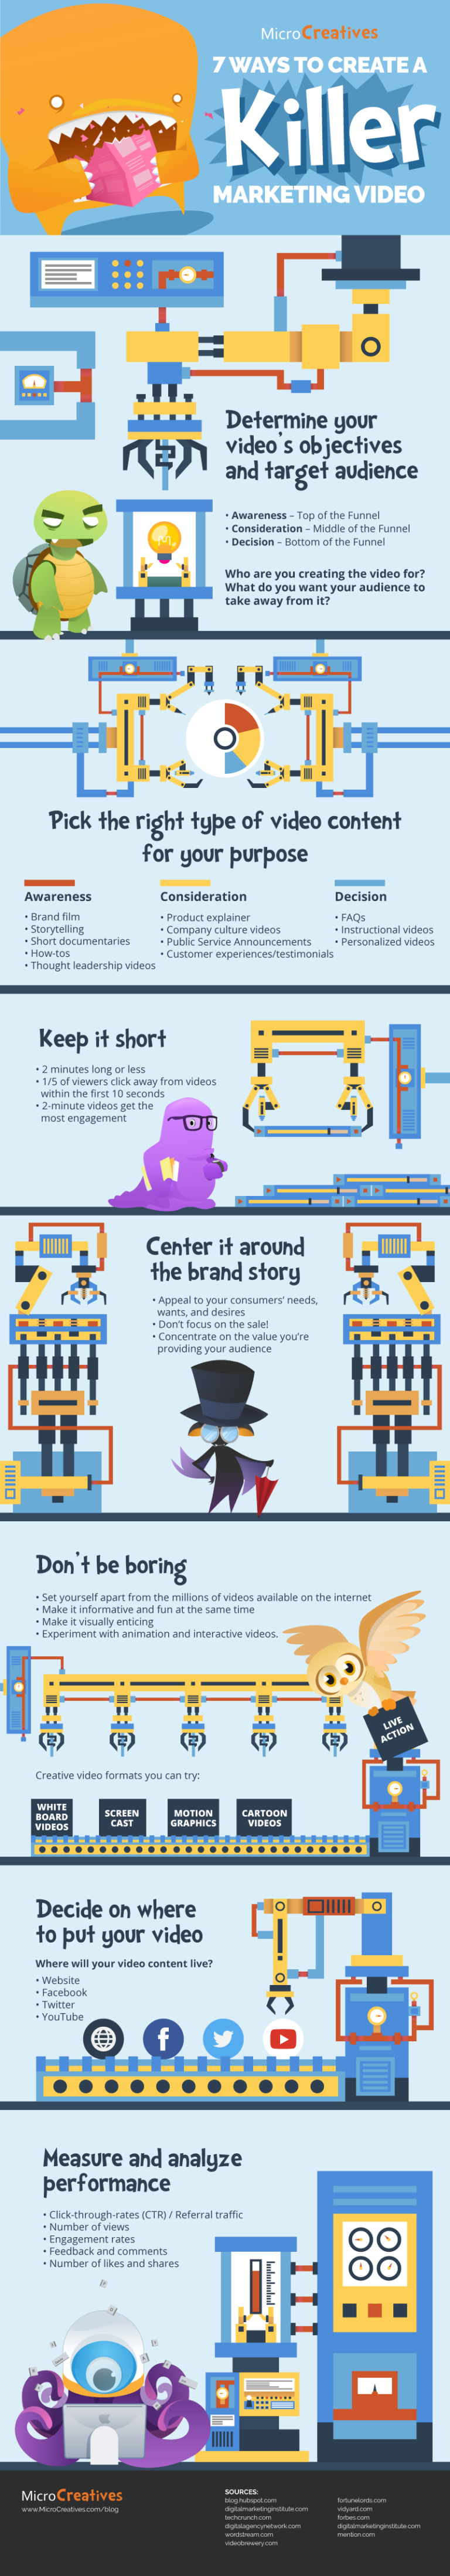 7 Ways To Create A Killer Marketing Video [Infographic]